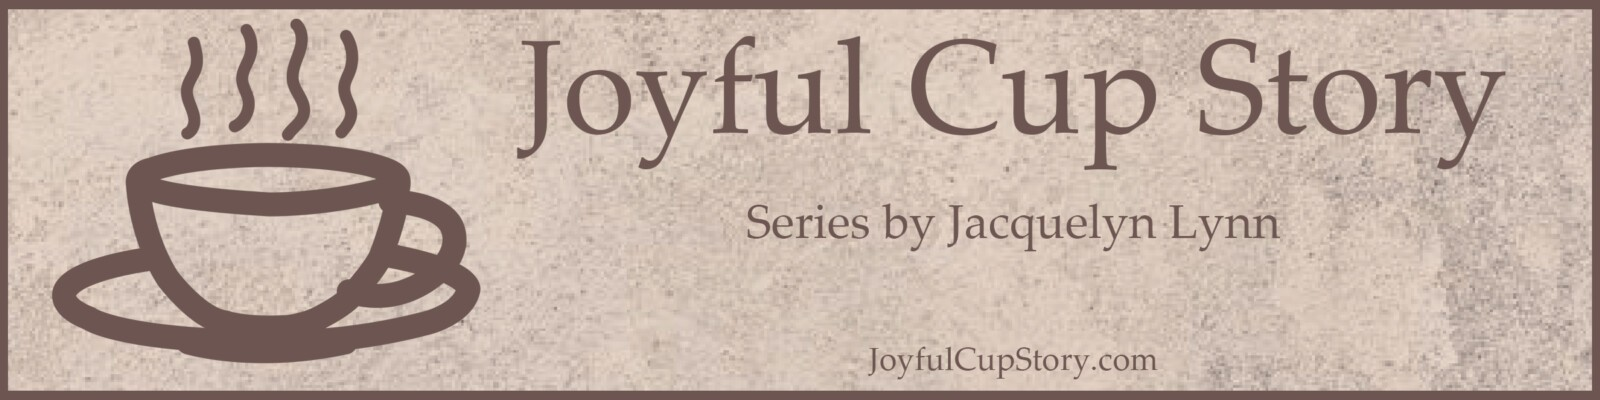 Joyful Cup Story series by Jacquelyn Lynn